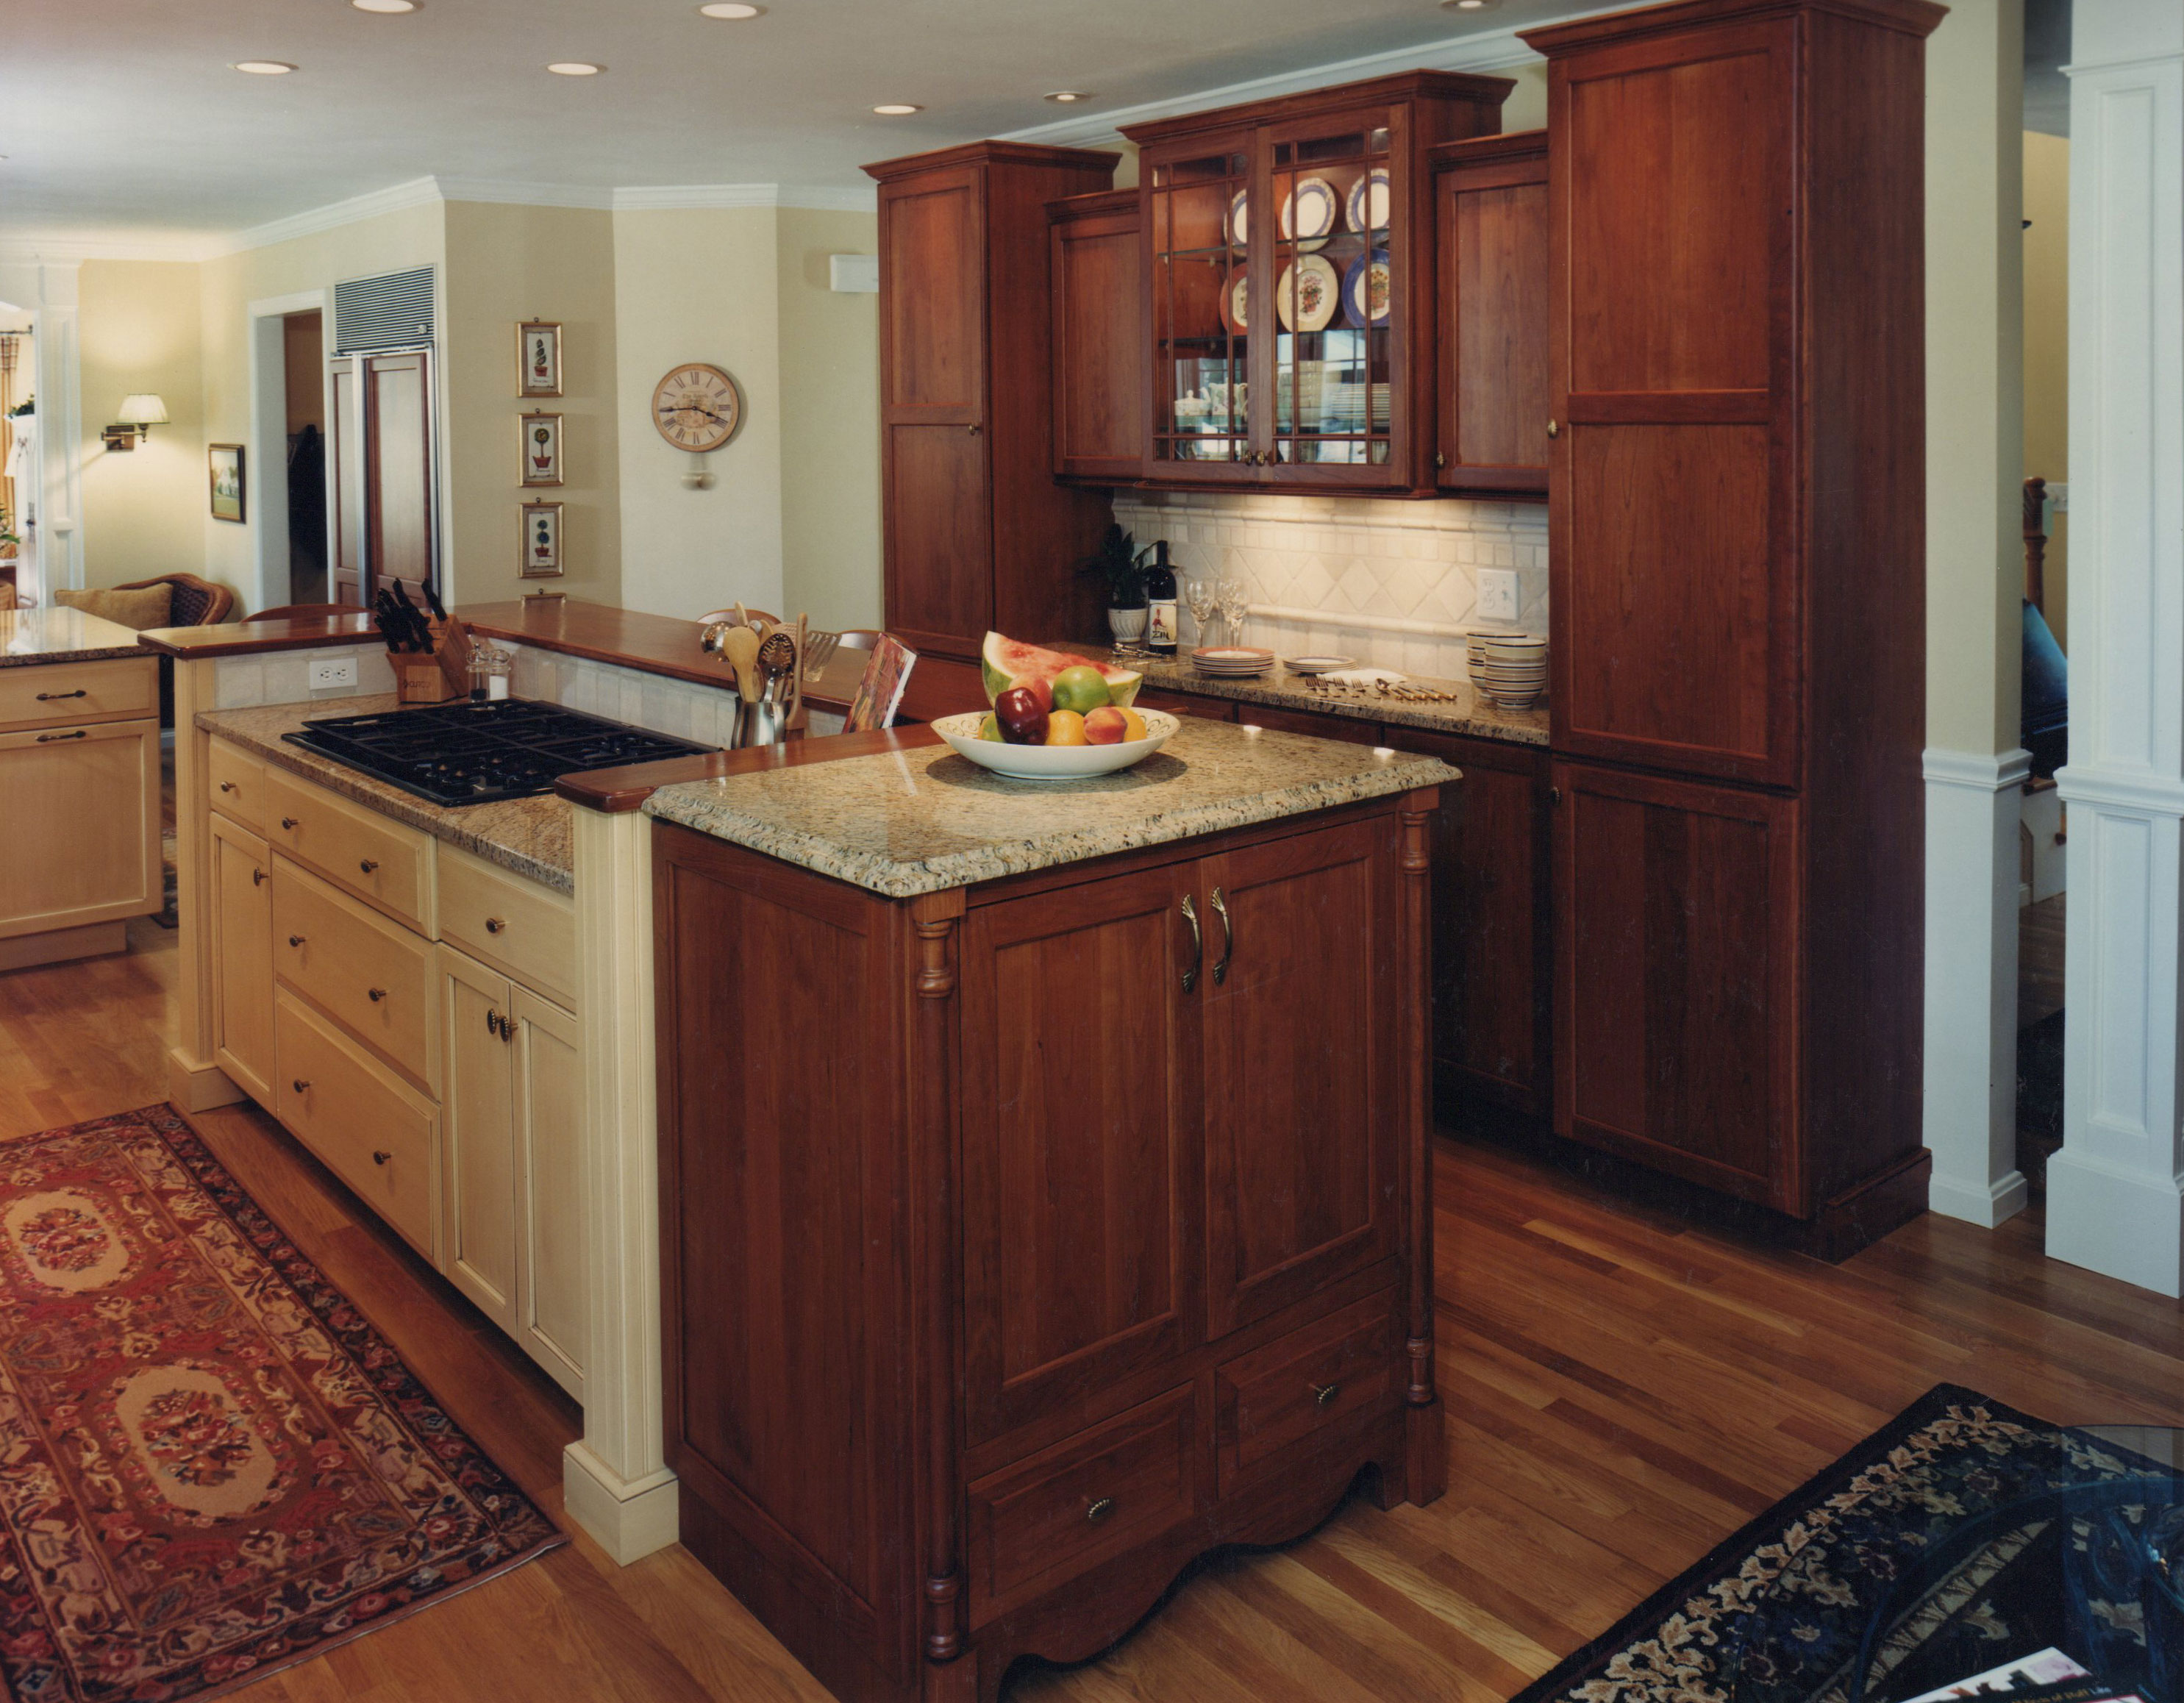 Leave enough room on all sides to move around — 3 feet of. Country Kitchen – Island Cooktop | Currier Kitchens